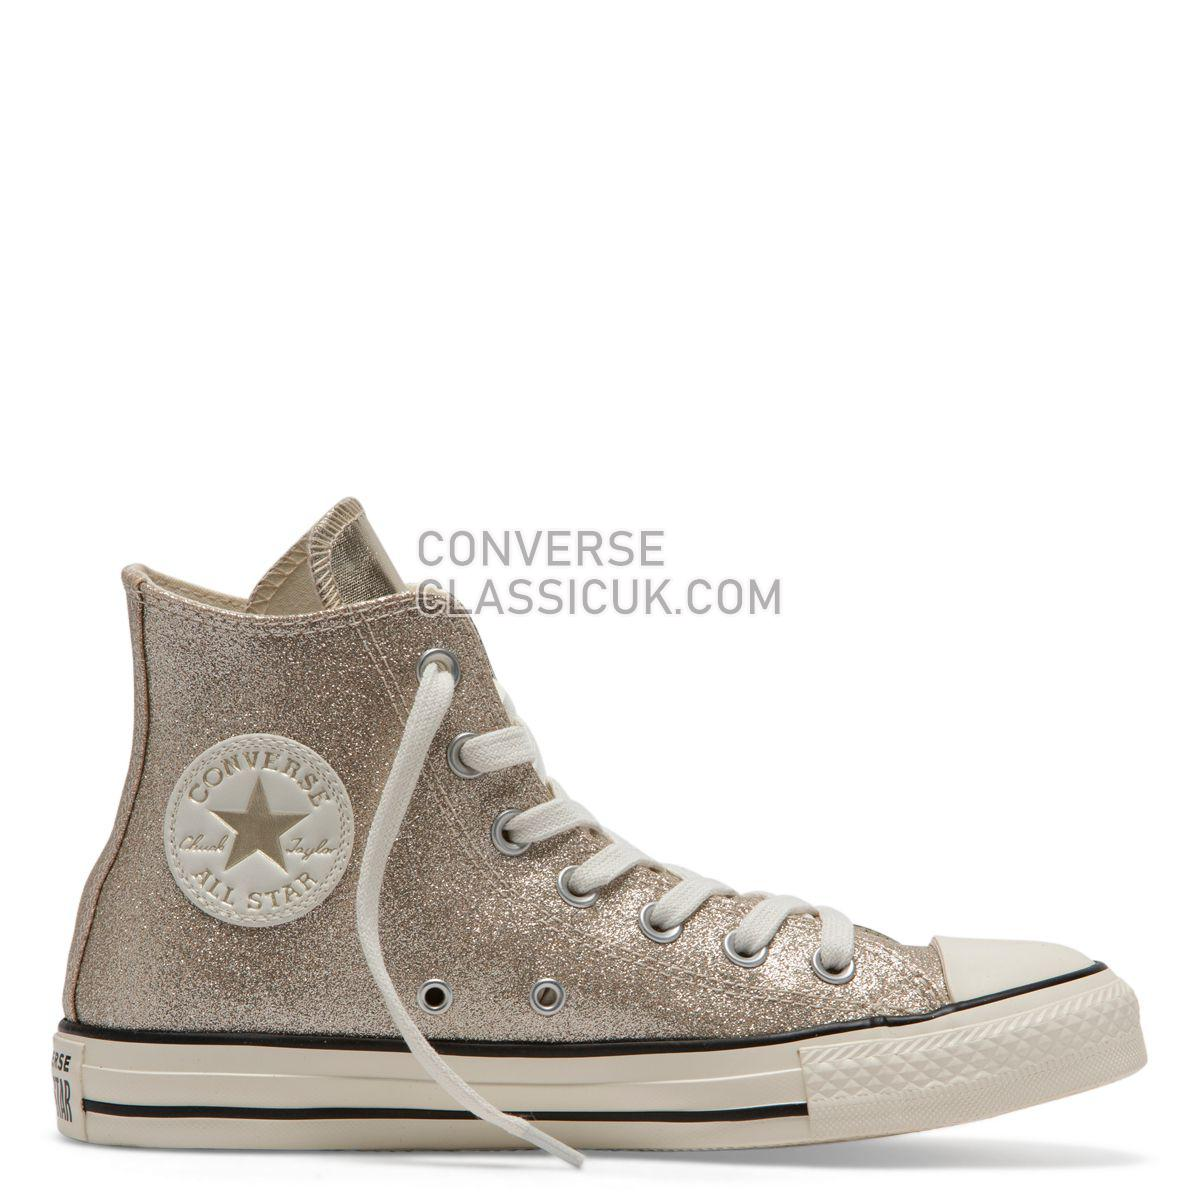 Converse Chuck Taylor All Star Shiny Metal High Top Light Gold Womens 564851 Light Gold/Egret/Black Shoes